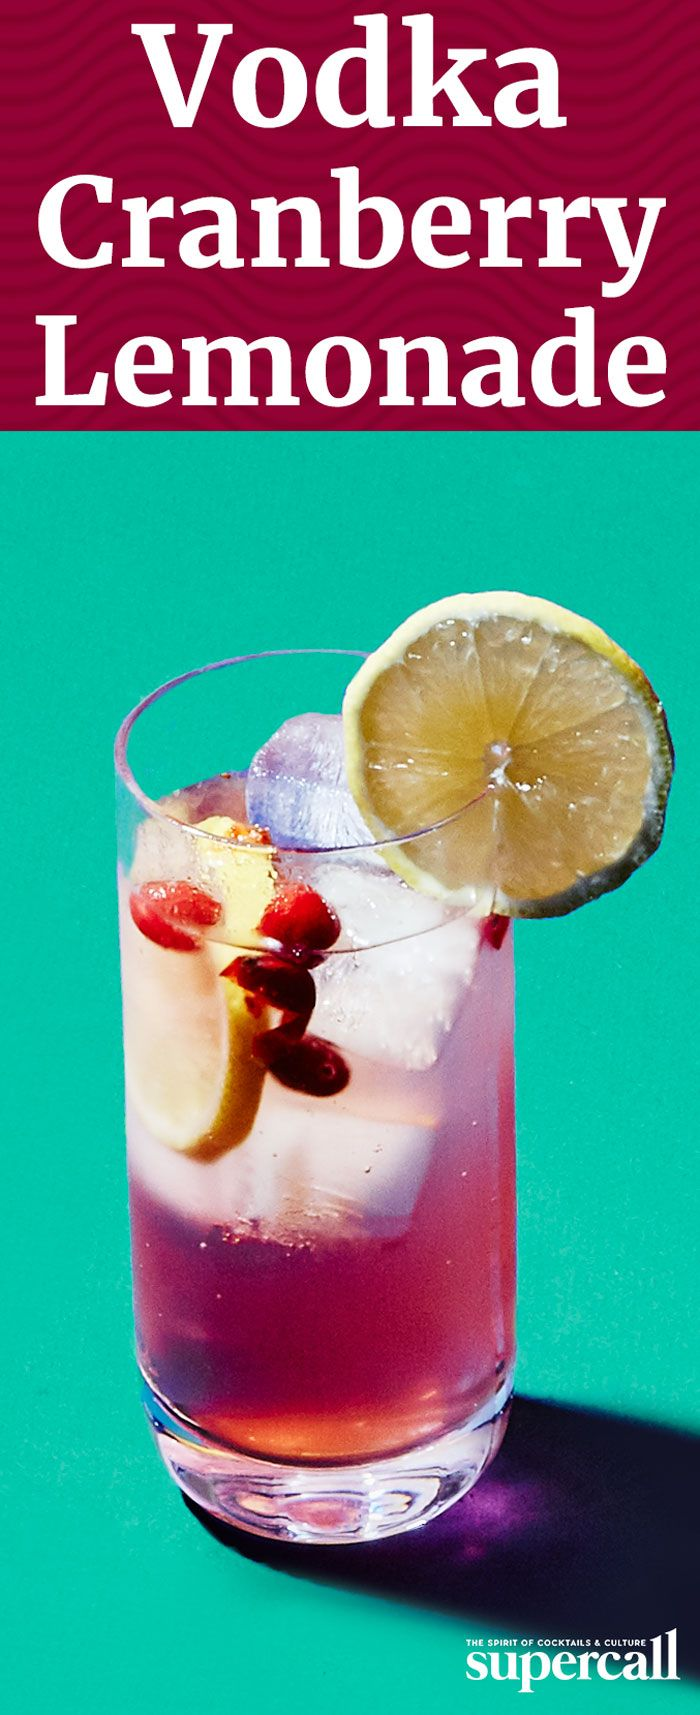 This variation on the Tom Collins gets a tart and tangy bite from muddled fresh cranberries and lemon. As easy to make as it is to drink, it's simple enough for a quick afternoon aperitif and pretty enough to serve at a cocktail party.